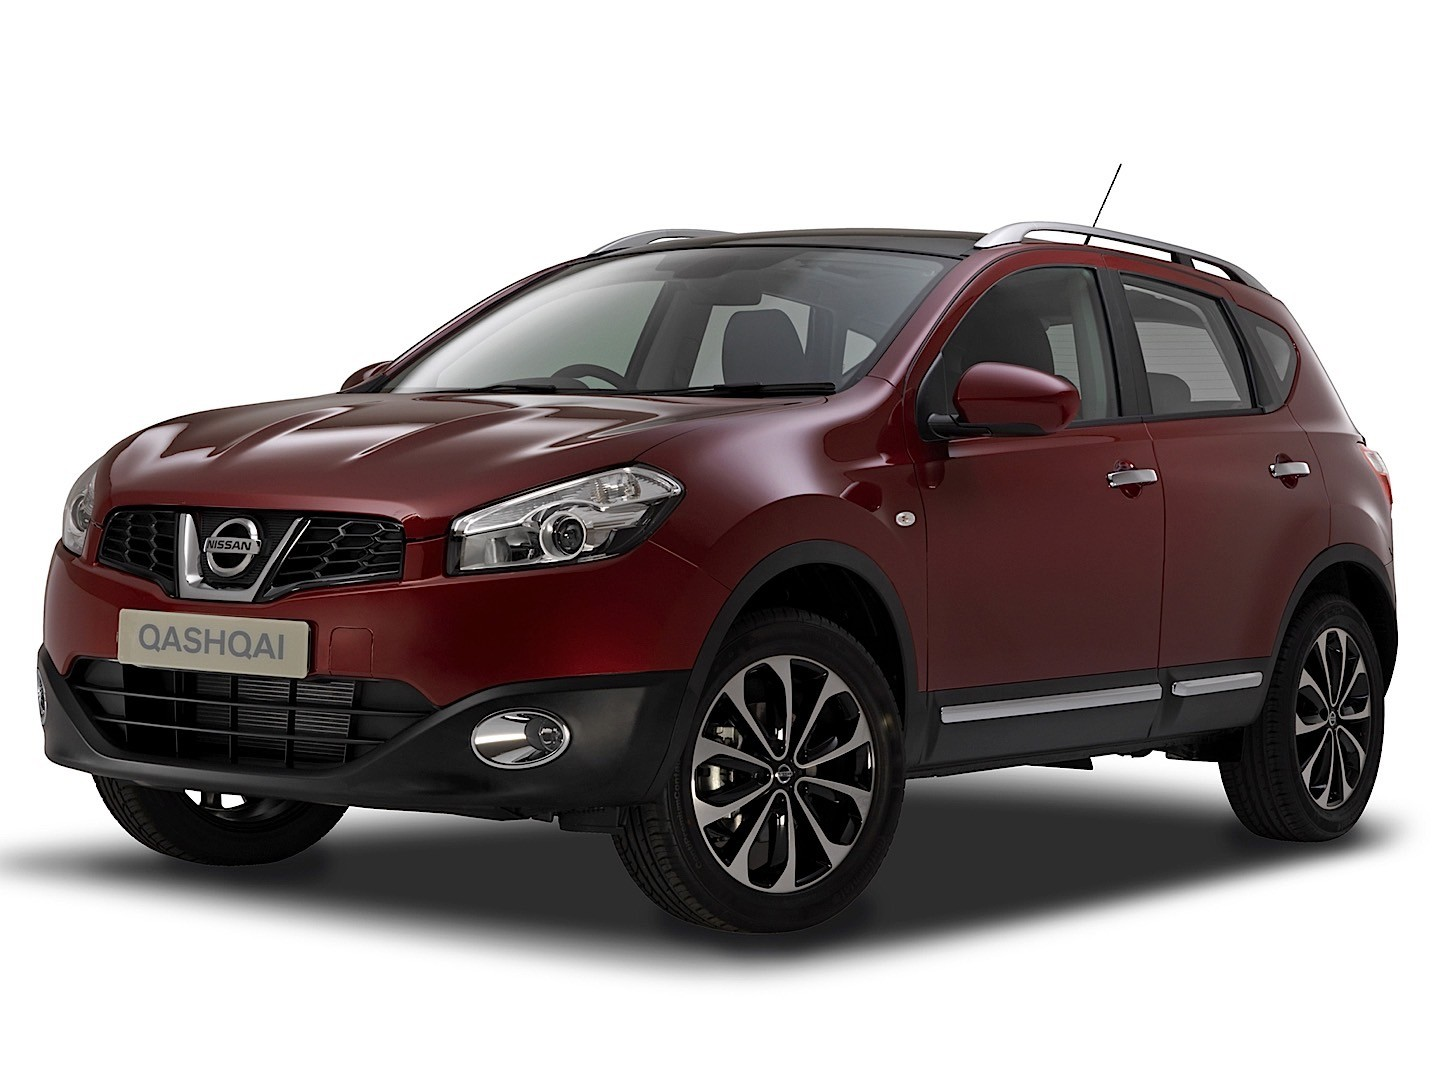 nissan qashqai specs photos 2010 2011 2012 2013 autoevolution. Black Bedroom Furniture Sets. Home Design Ideas